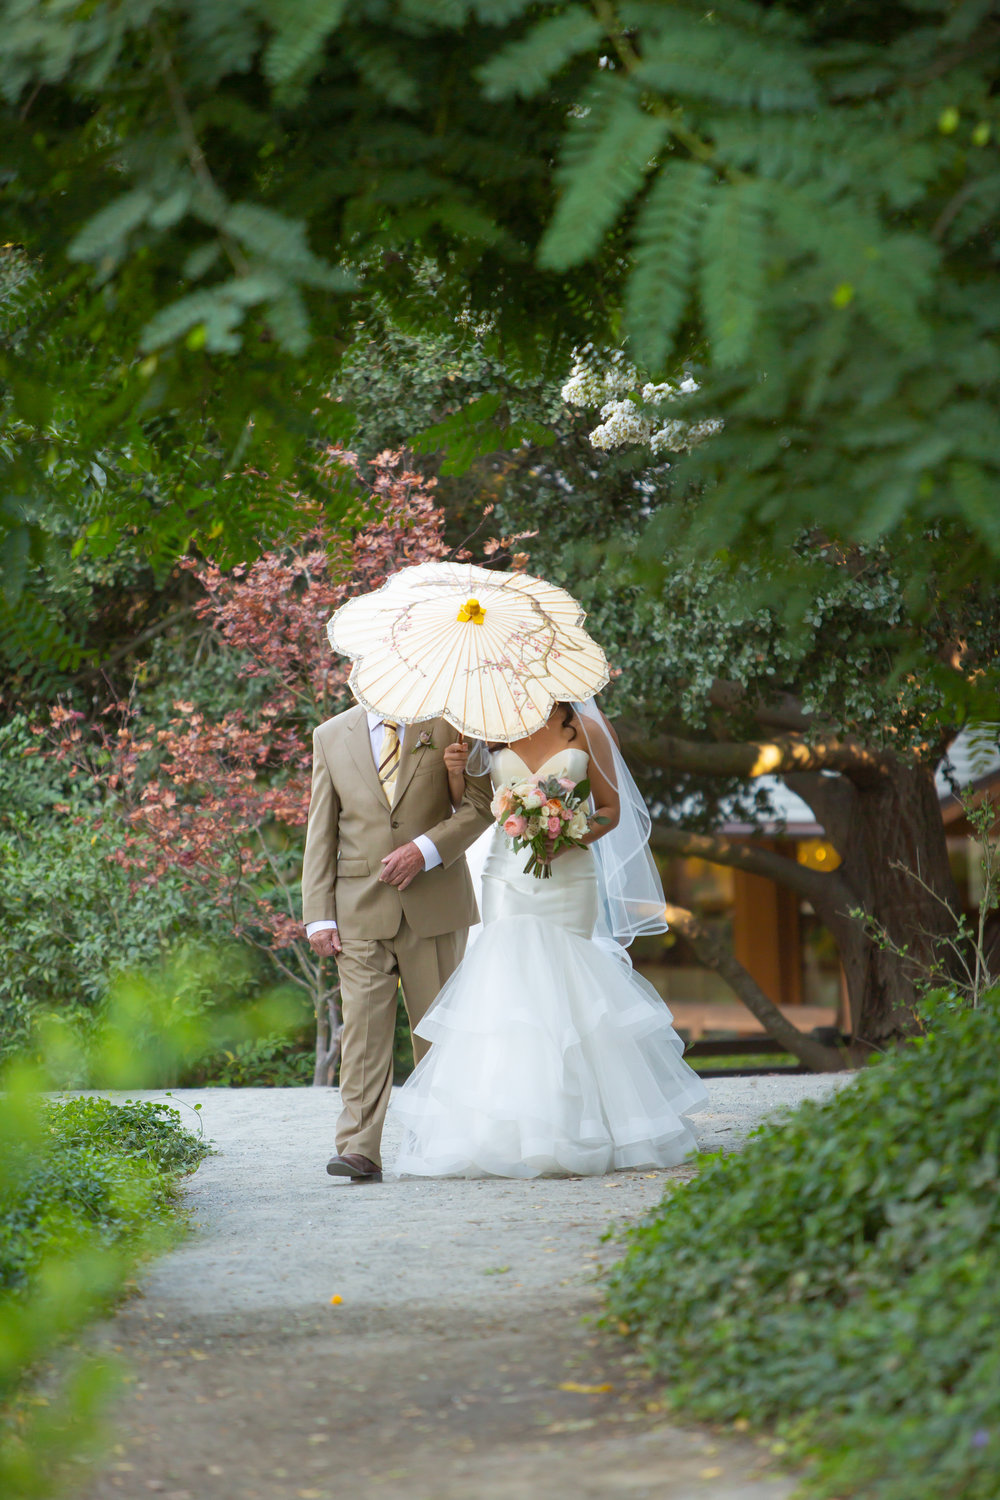 San-Diego-Wedding-Japanese-Friendship-Garden-Carla-David-2018-164.jpg